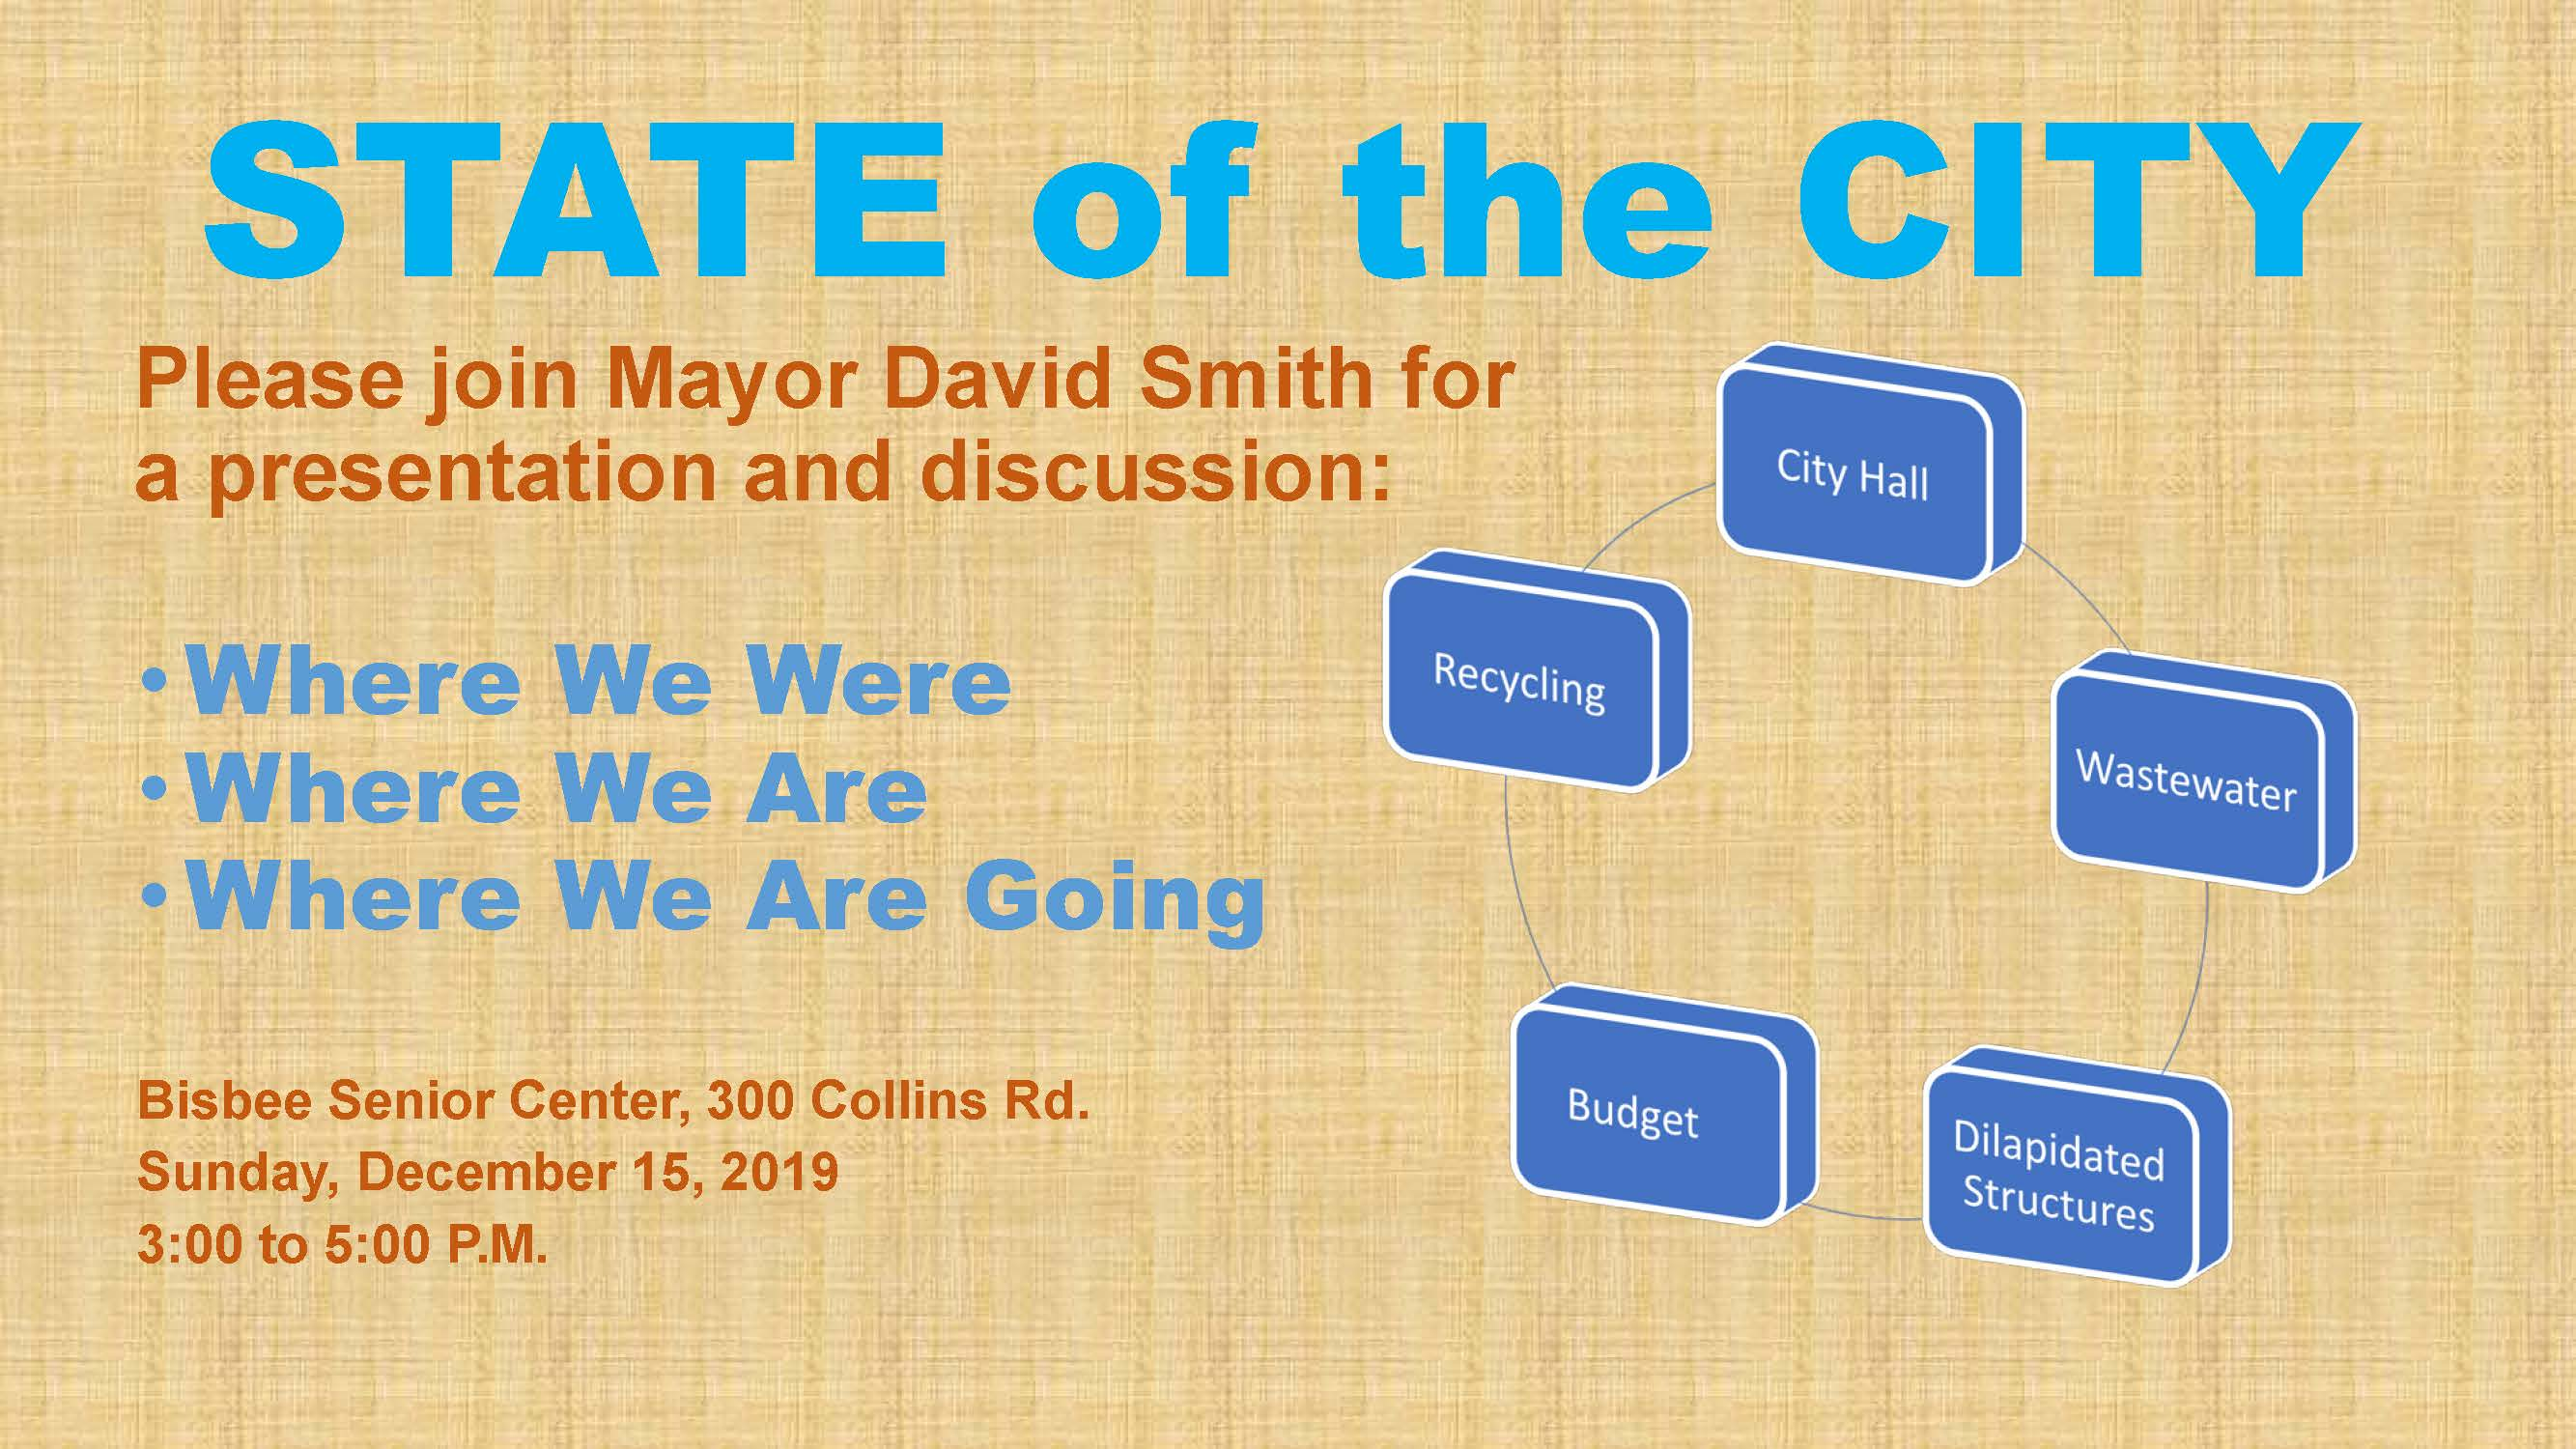 STATE of the CITY 12-15-19